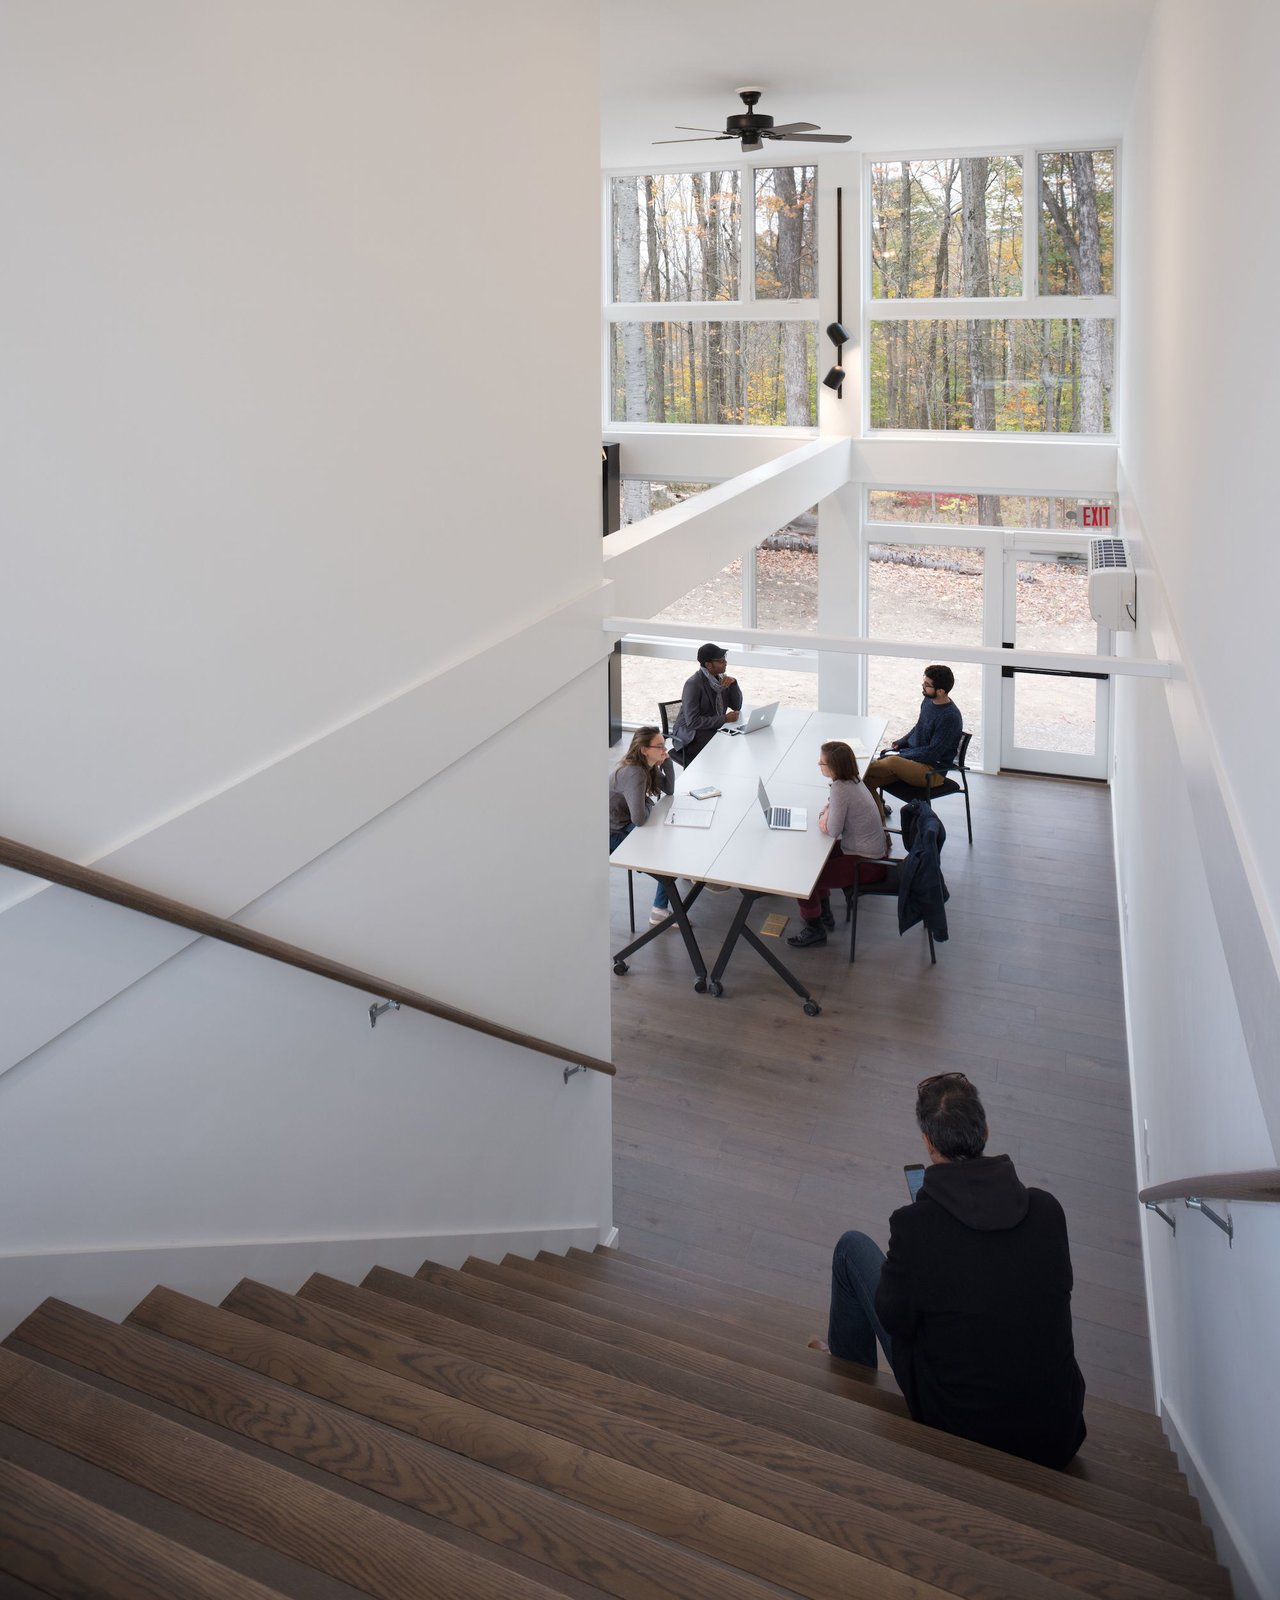 The stairs double as auditorium-style seating.